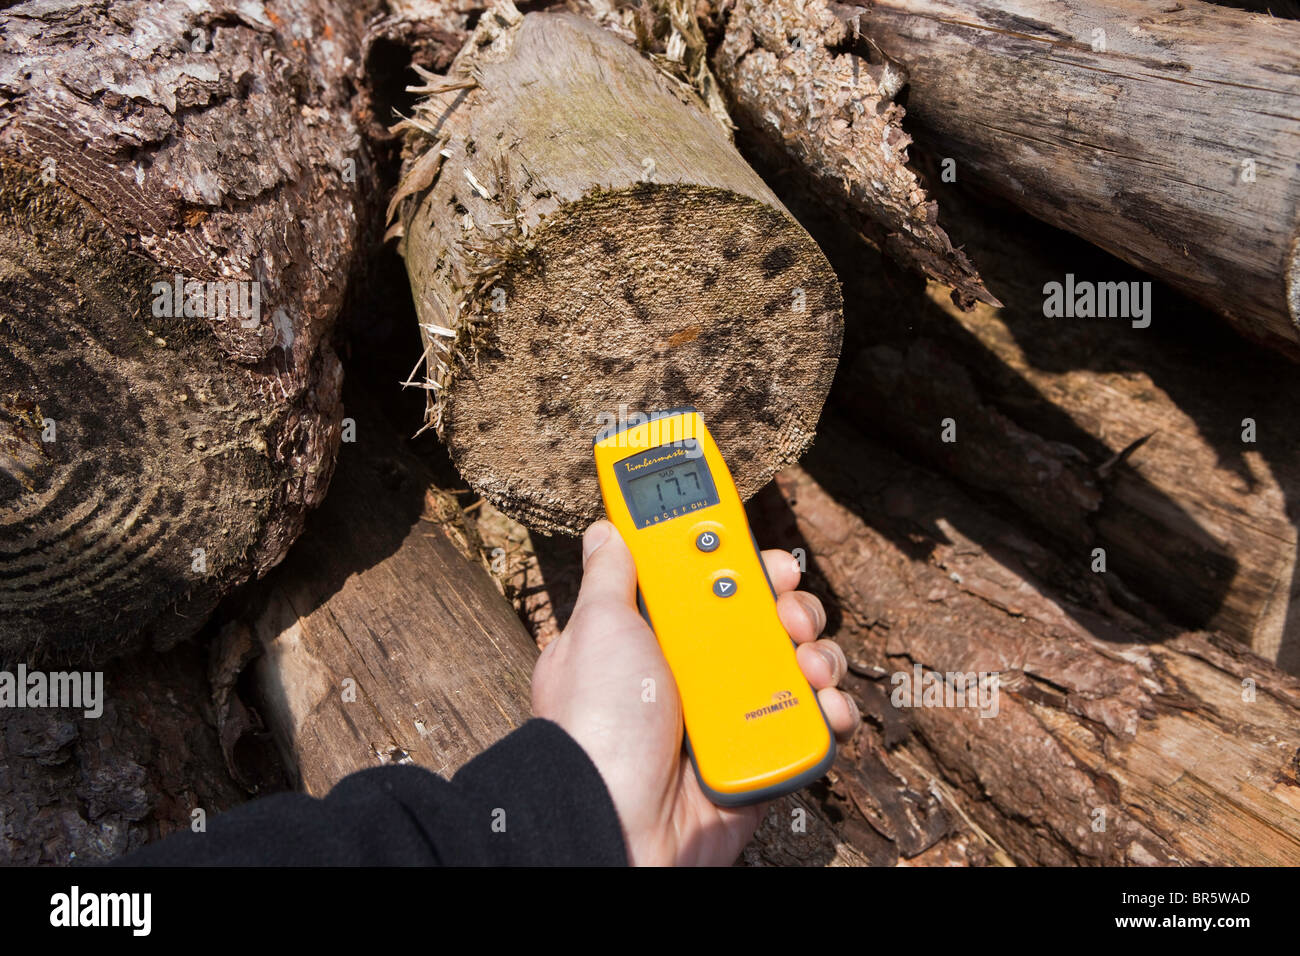 Measuring the moisture content of a log with a Protimeter Moisture Meter to see if it is ready to be chipped. - Stock Image